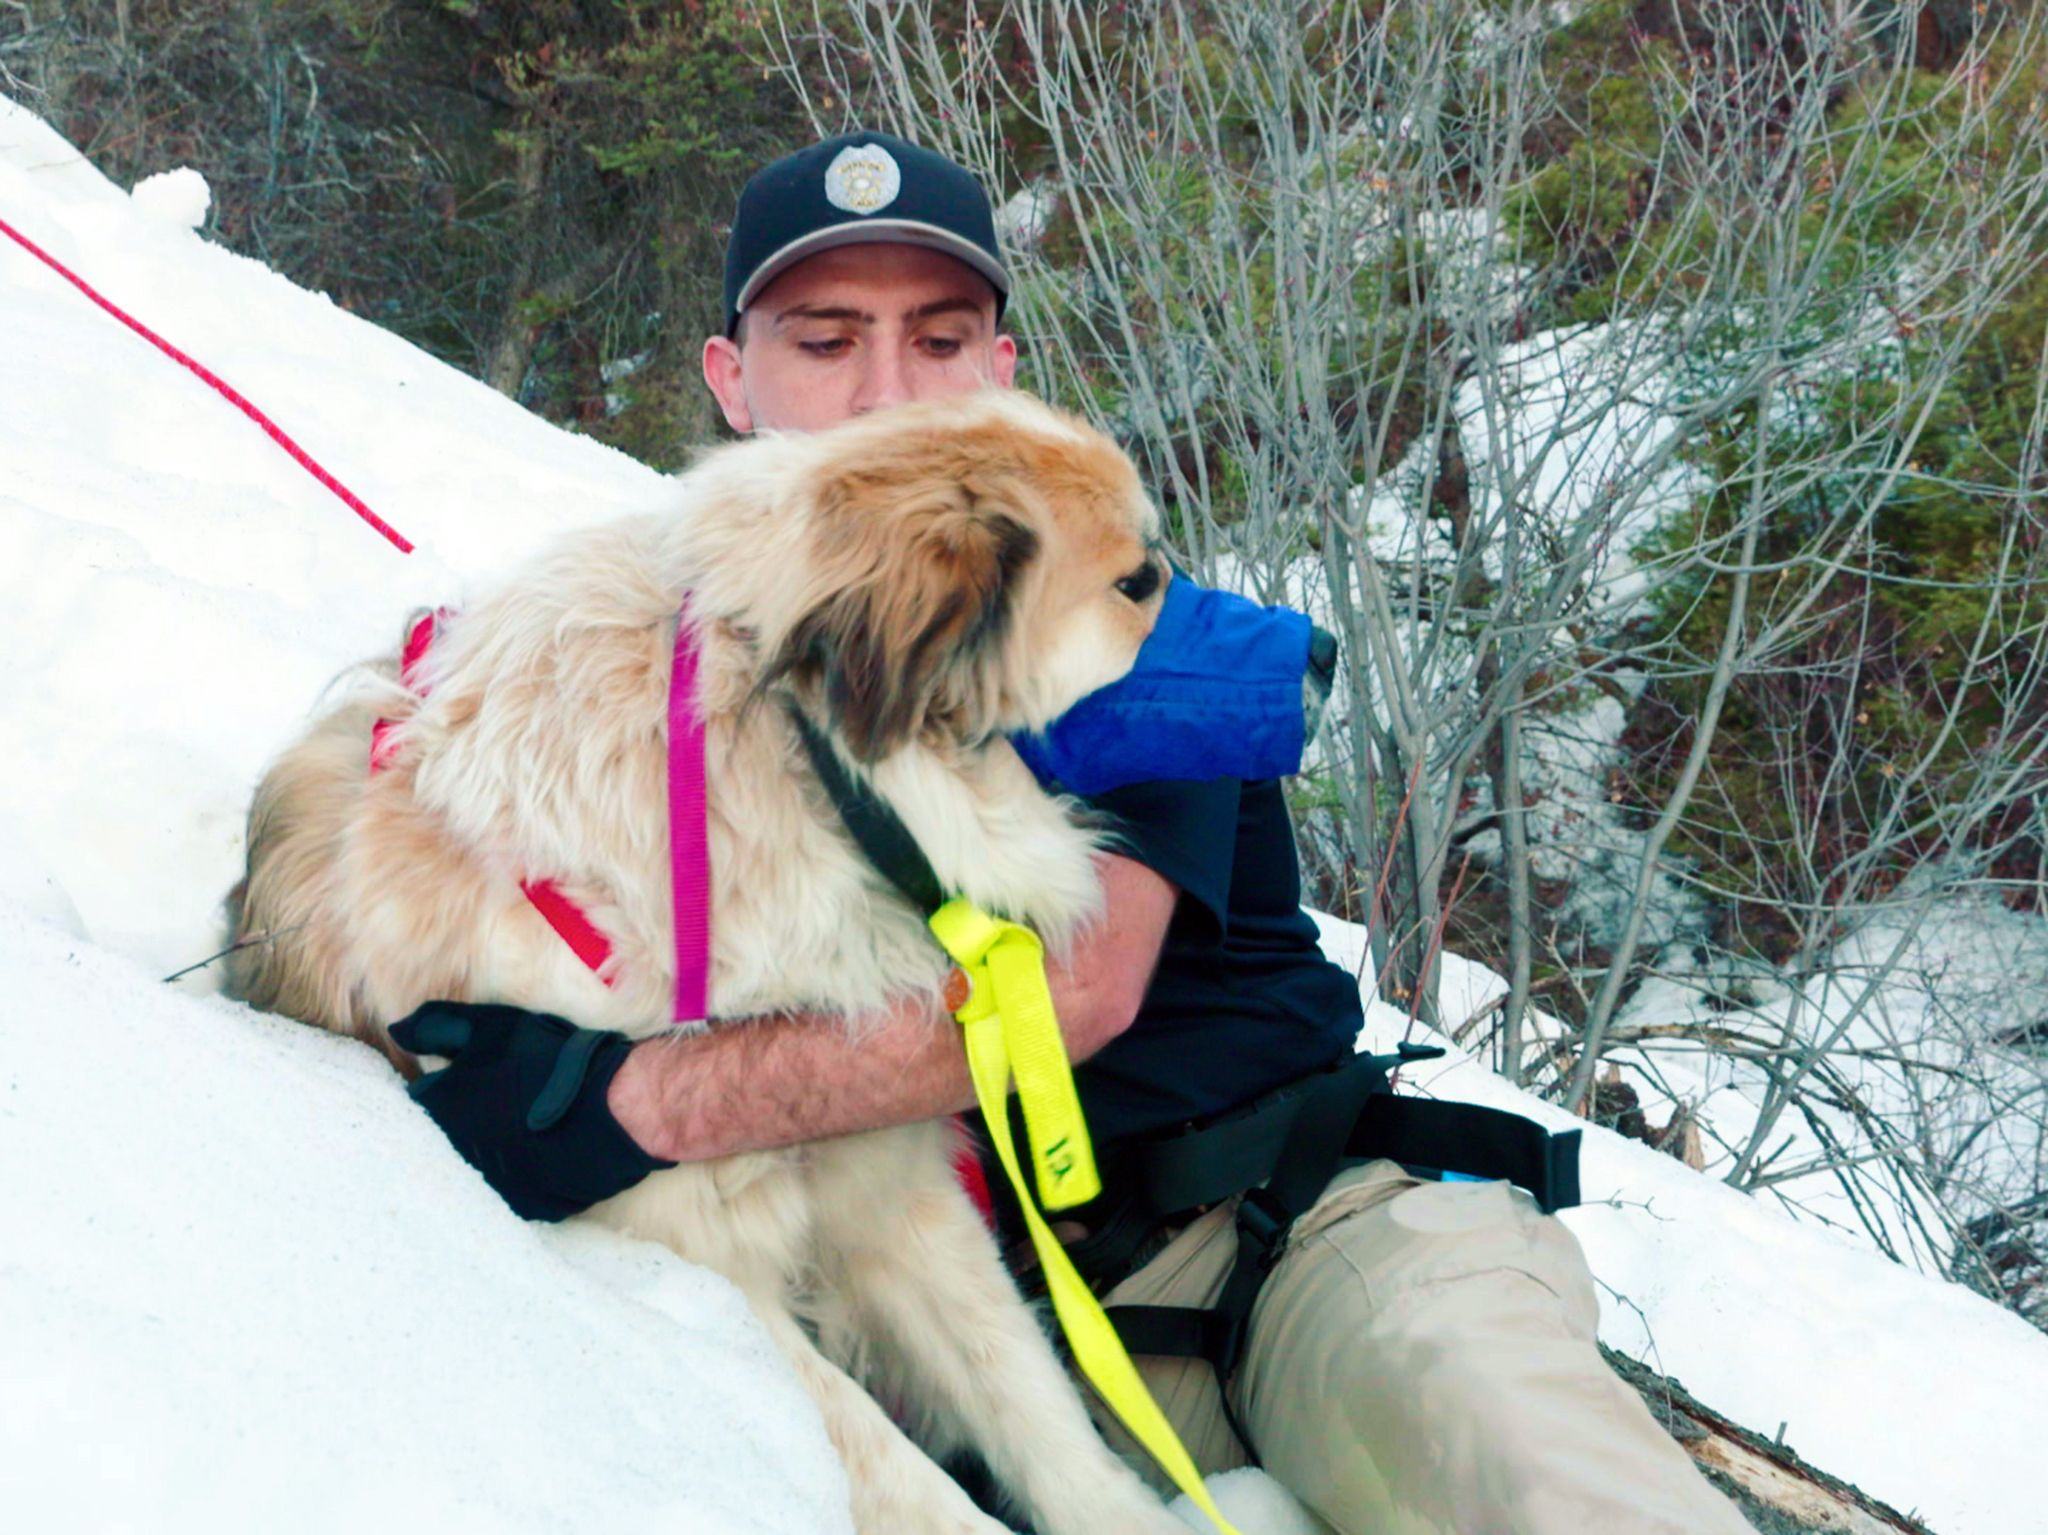 Larkspur, CO: ALE officer Tim Rice guides Izzy, the stranded dog, down a mountain. This image is... [Photo of the day - نوامبر 2019]